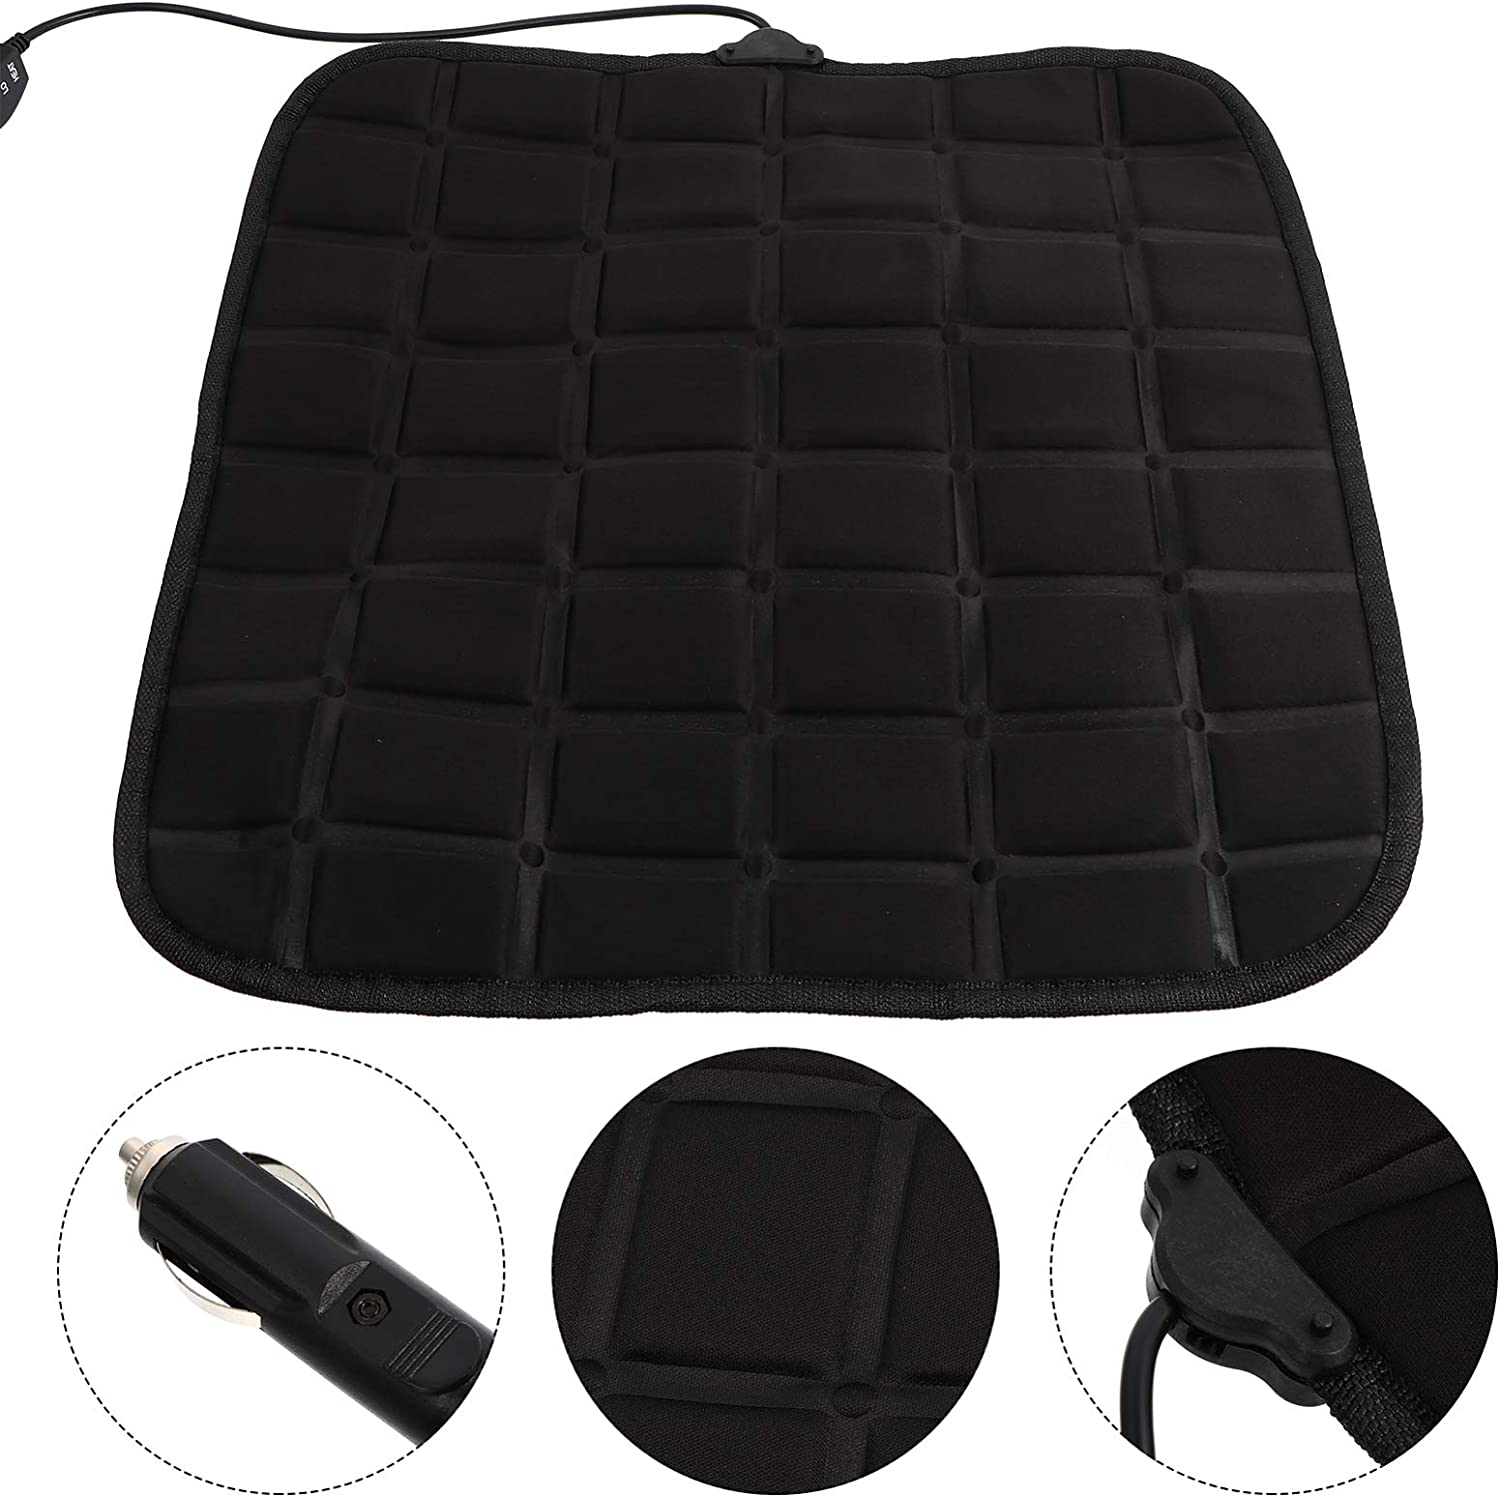 BESPORTBLE Heated Car Seat Covers Without Backrest Cotton Car Seat Cushion Heated Vehicle Seat Pad Auto Seat Protector for SUV Cars